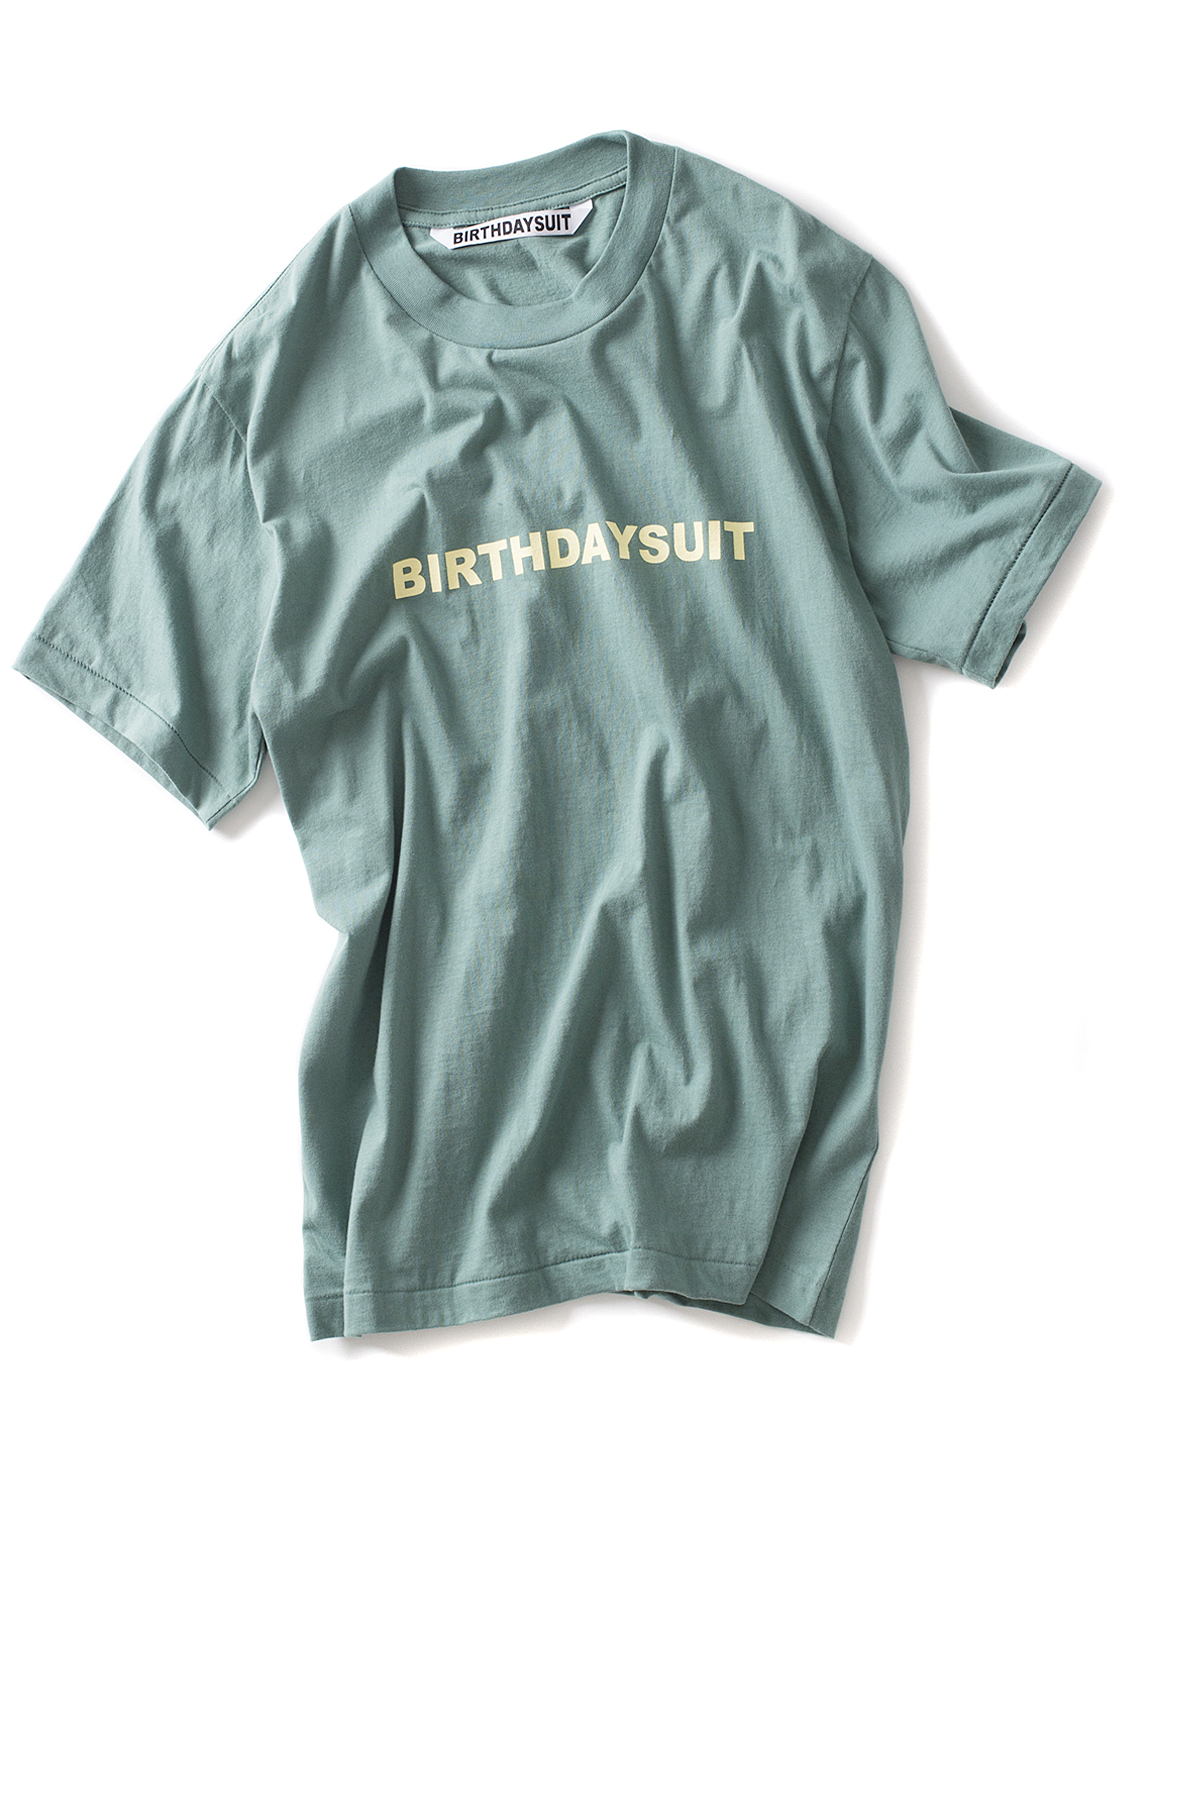 BIRTHDAYSUIT : Vacation T-Shirt (Avocado)